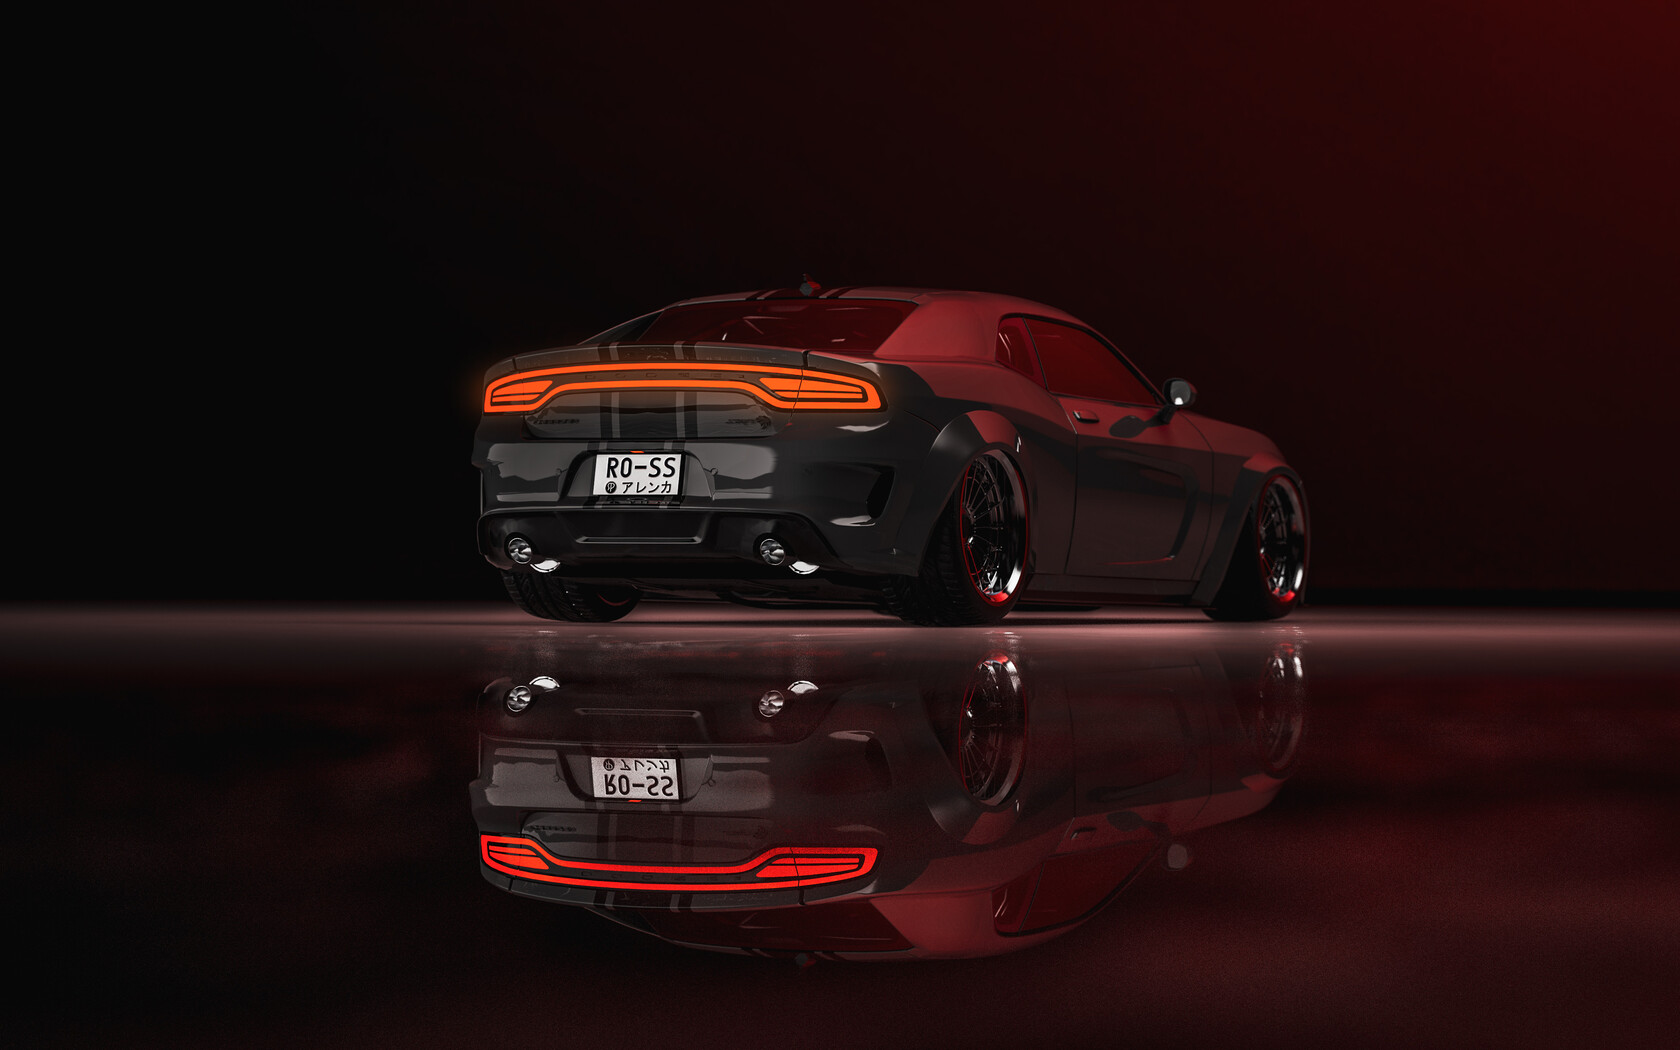 dodge-charger-coupe-rear-4k-u7.jpg